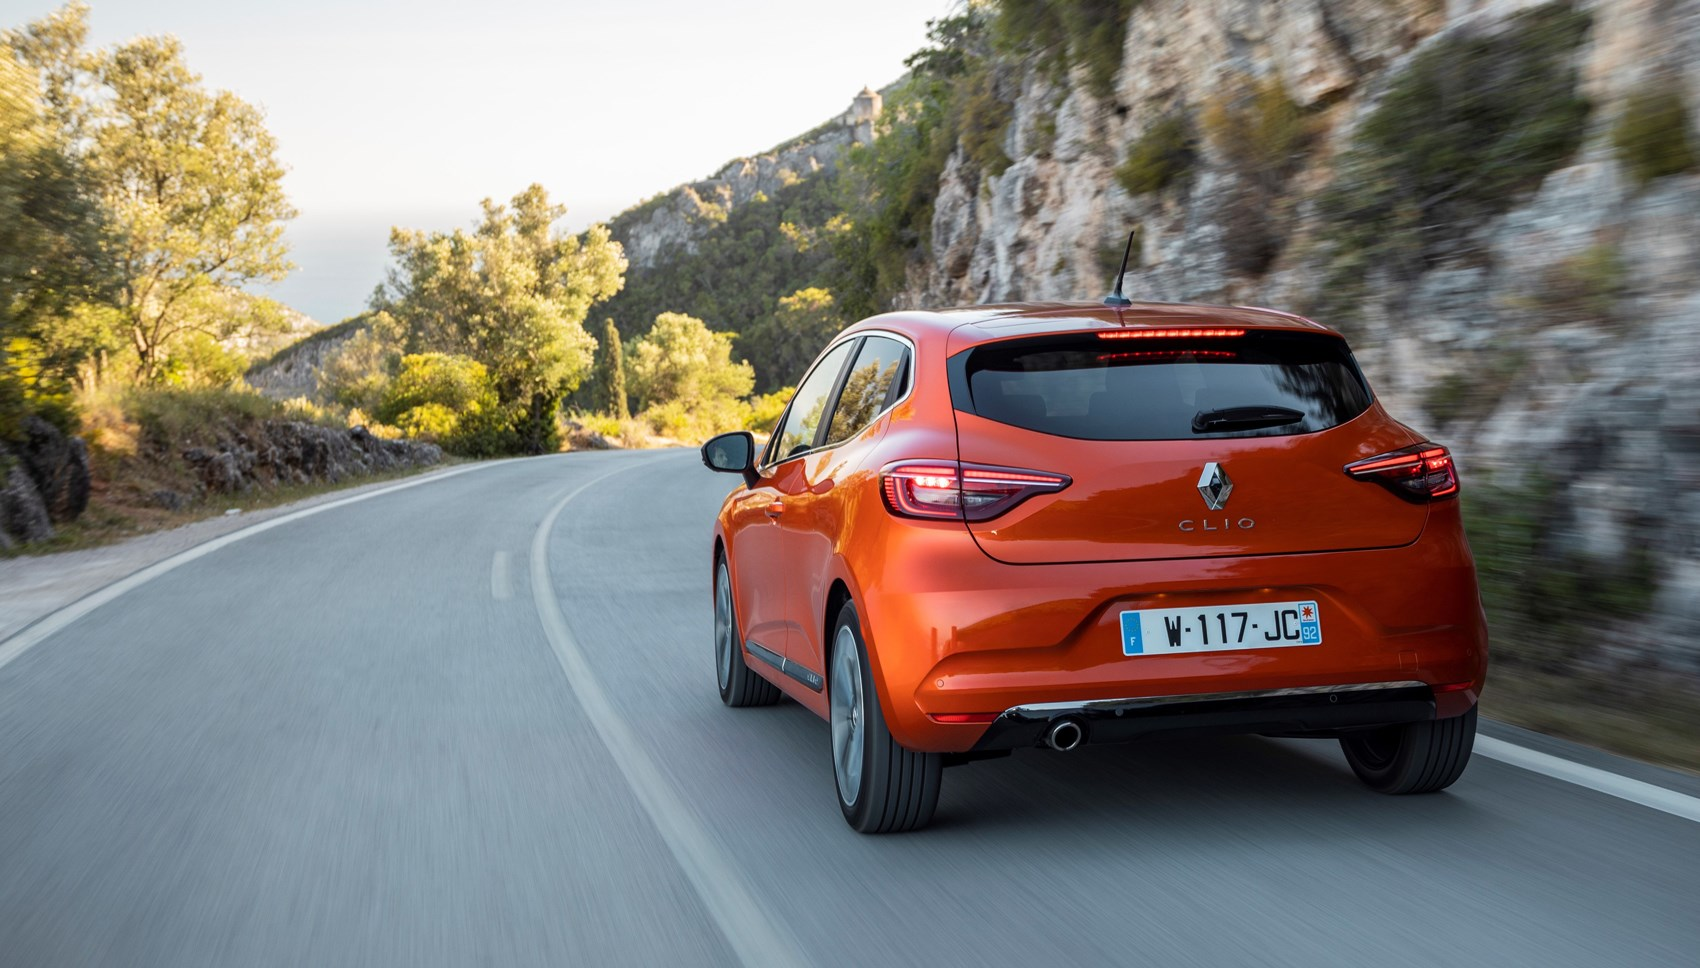 Renault Clio rear tracking